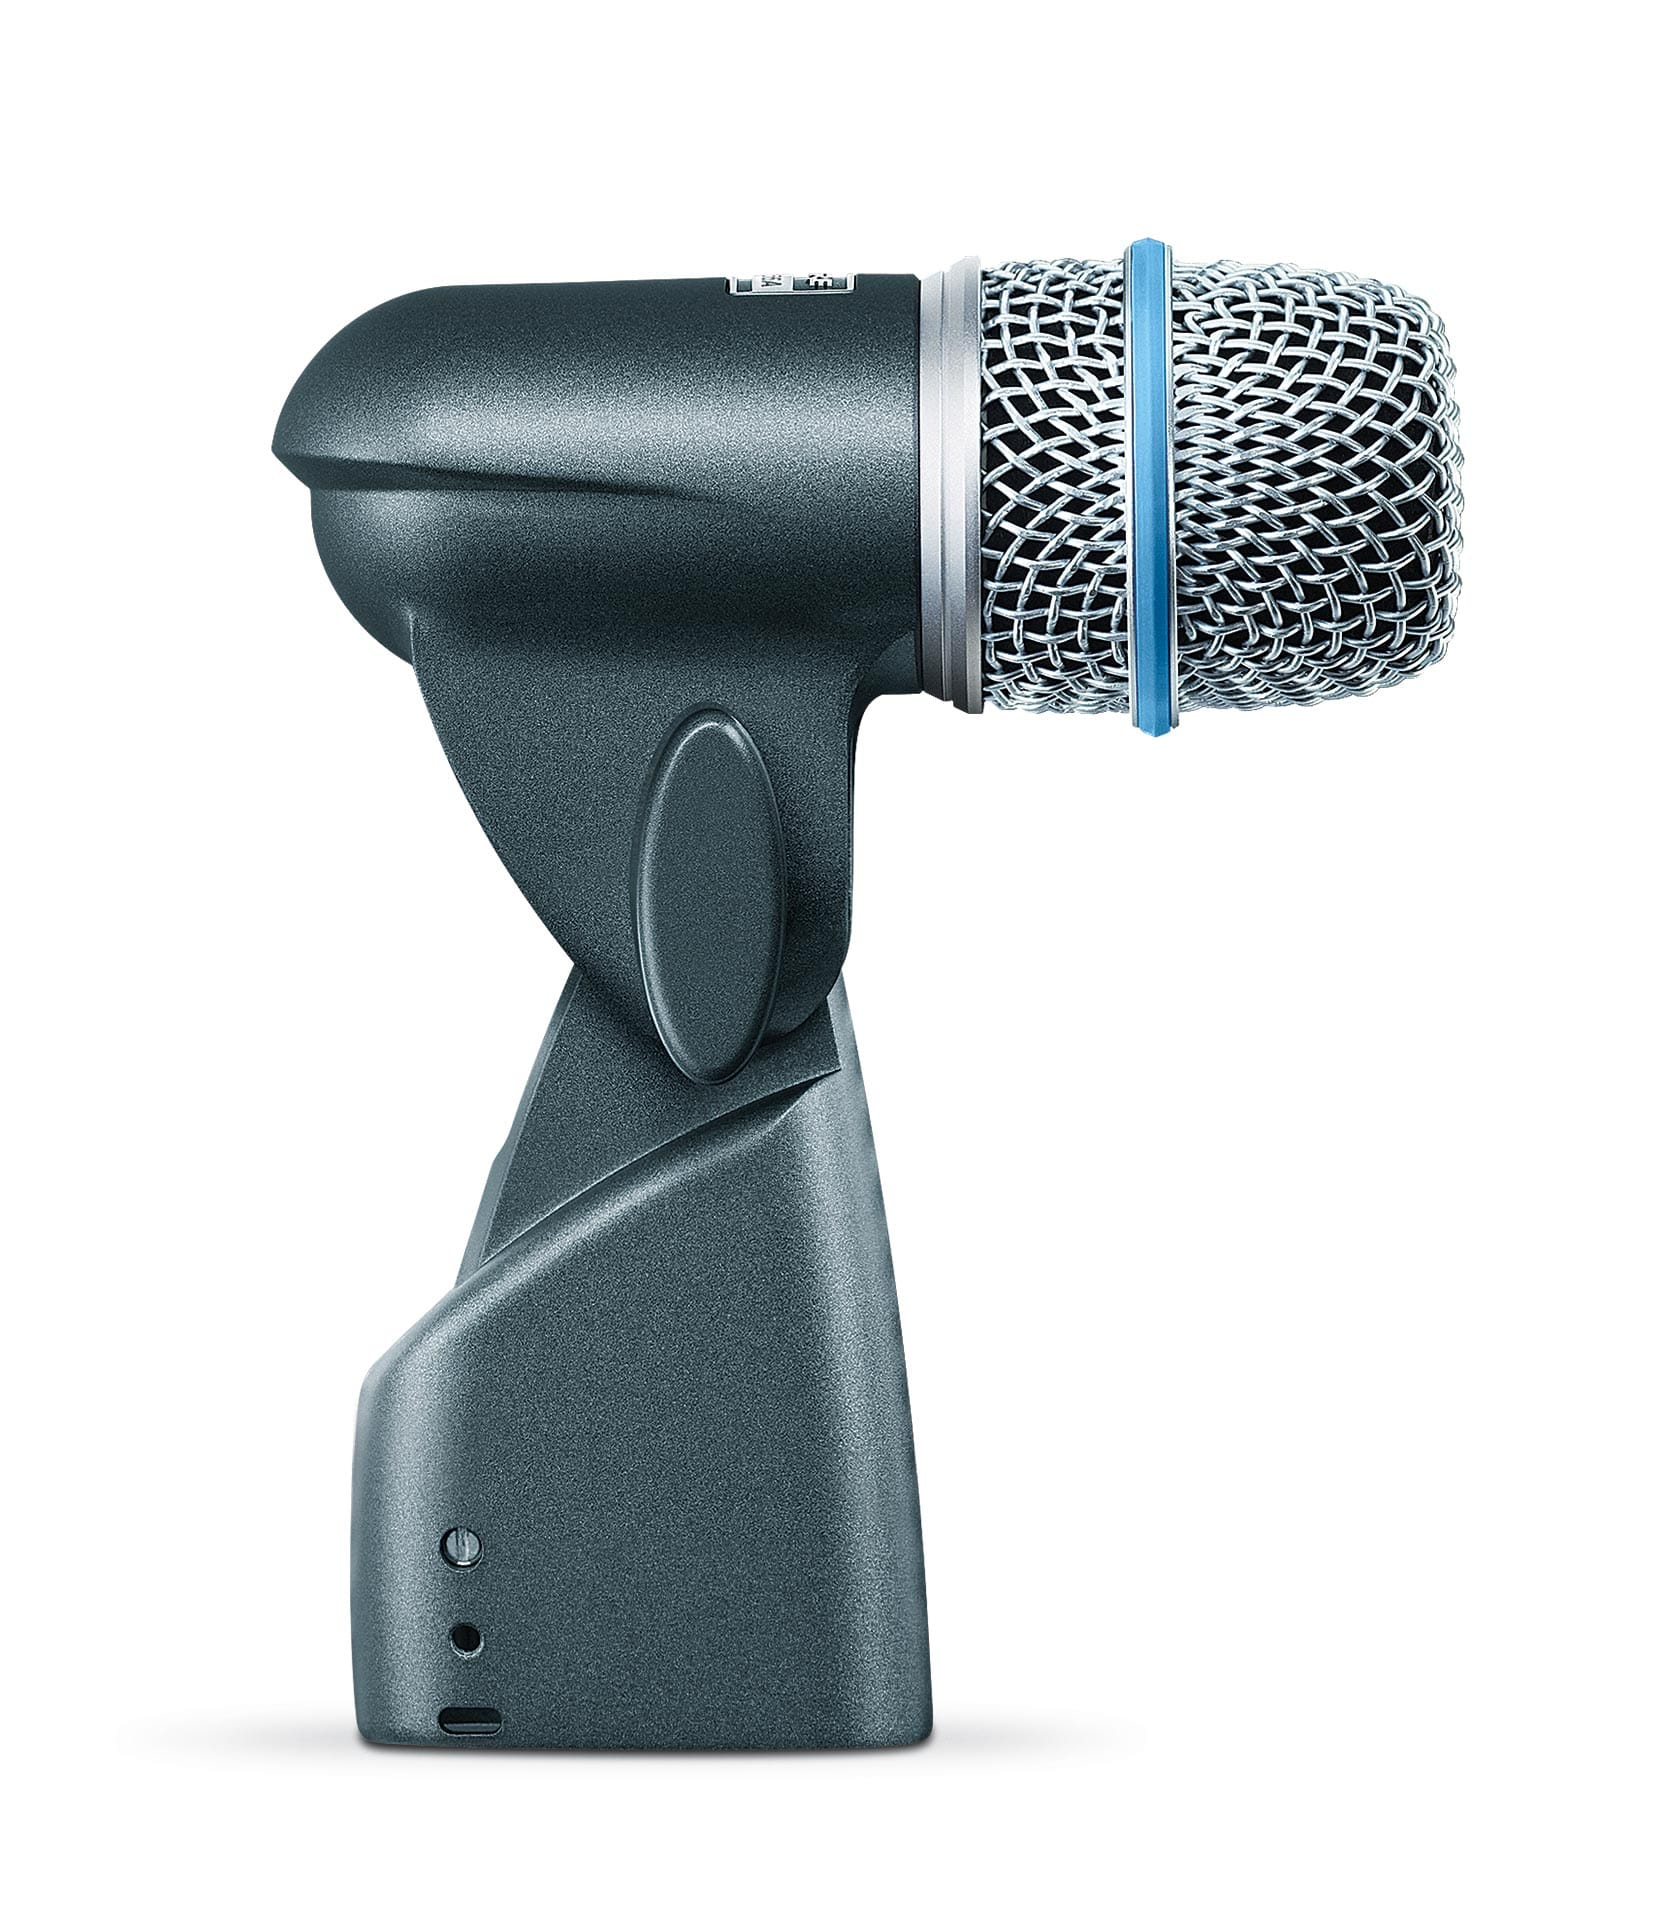 Buy Shure - BETA 56A X Supercardioid Dynamic Tom Microphone